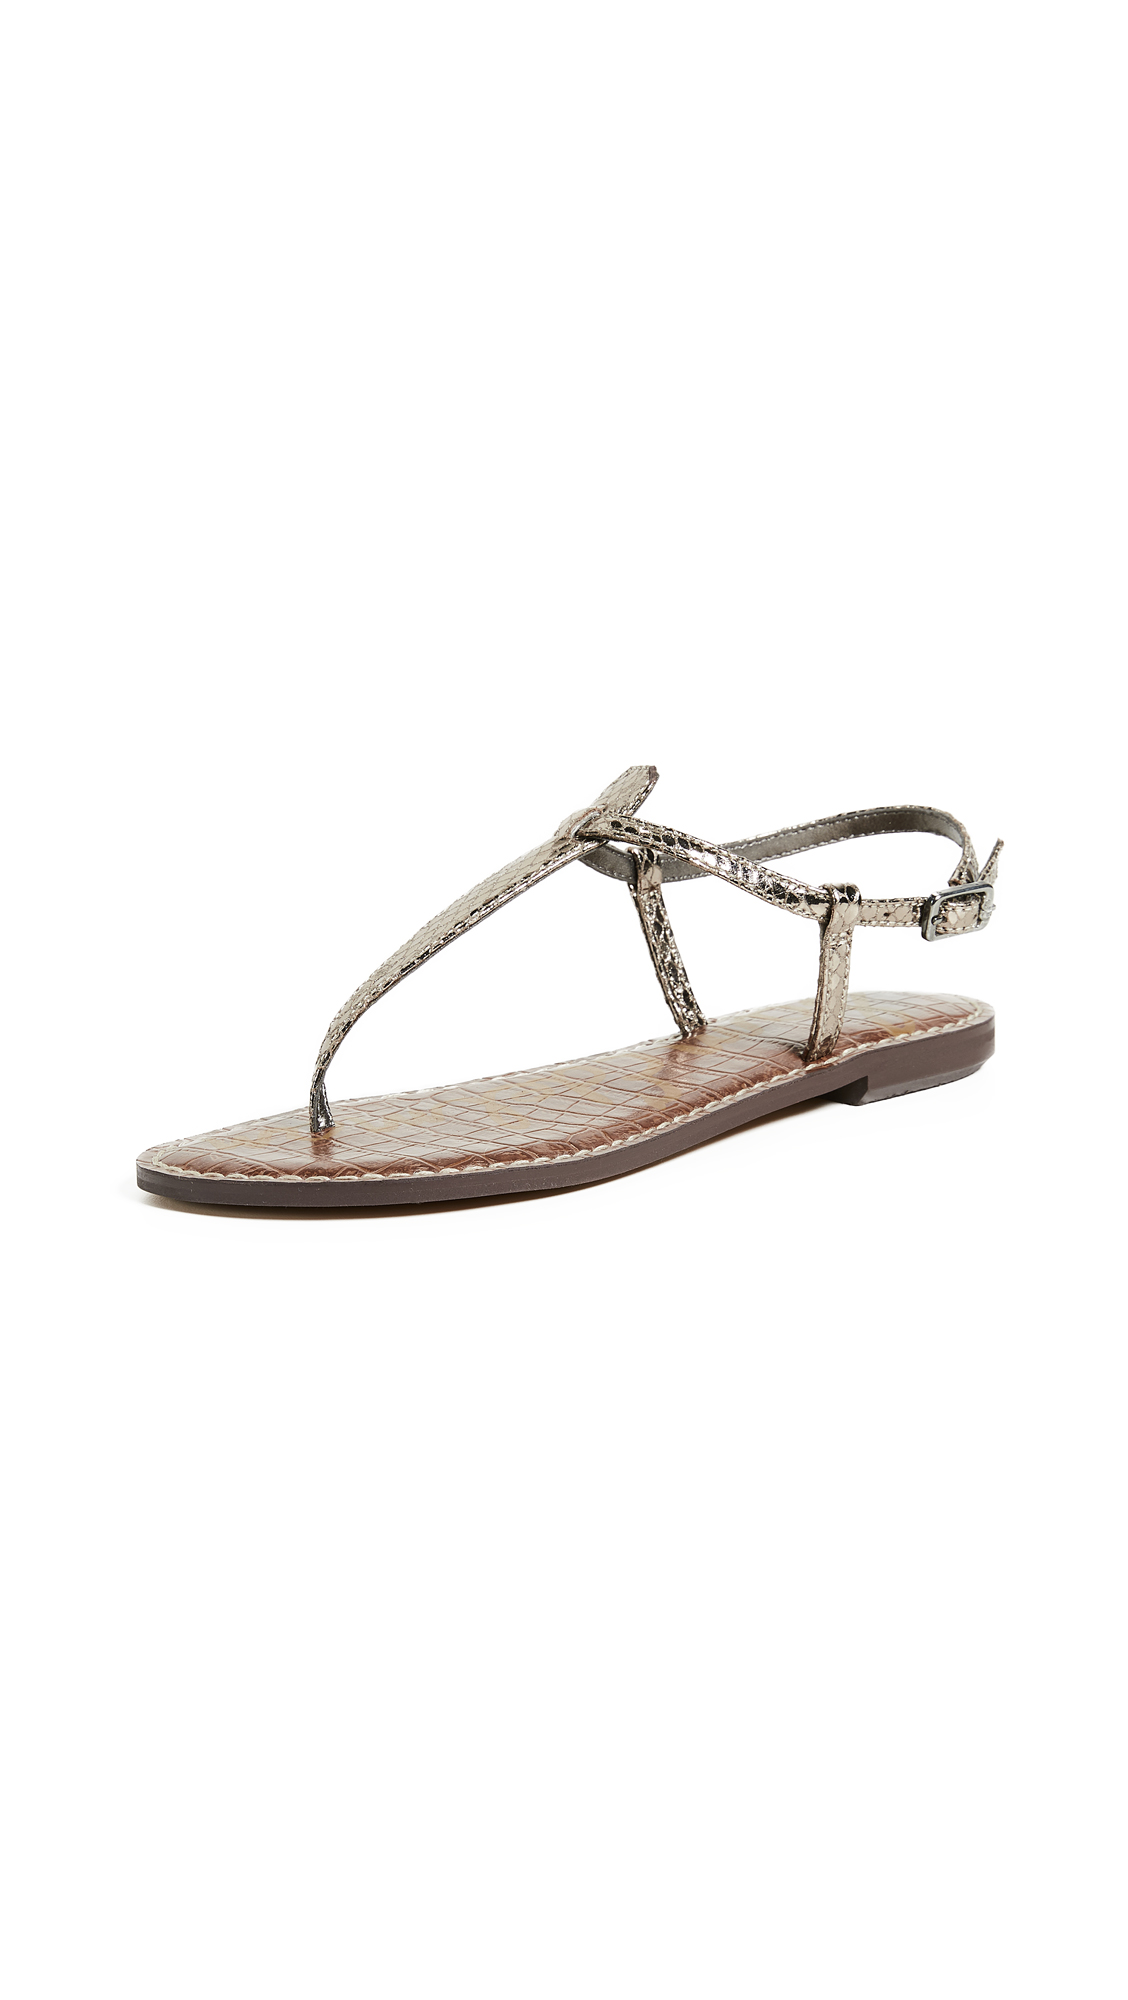 Sam Edelman Gigi Flat Sandals - Pewter